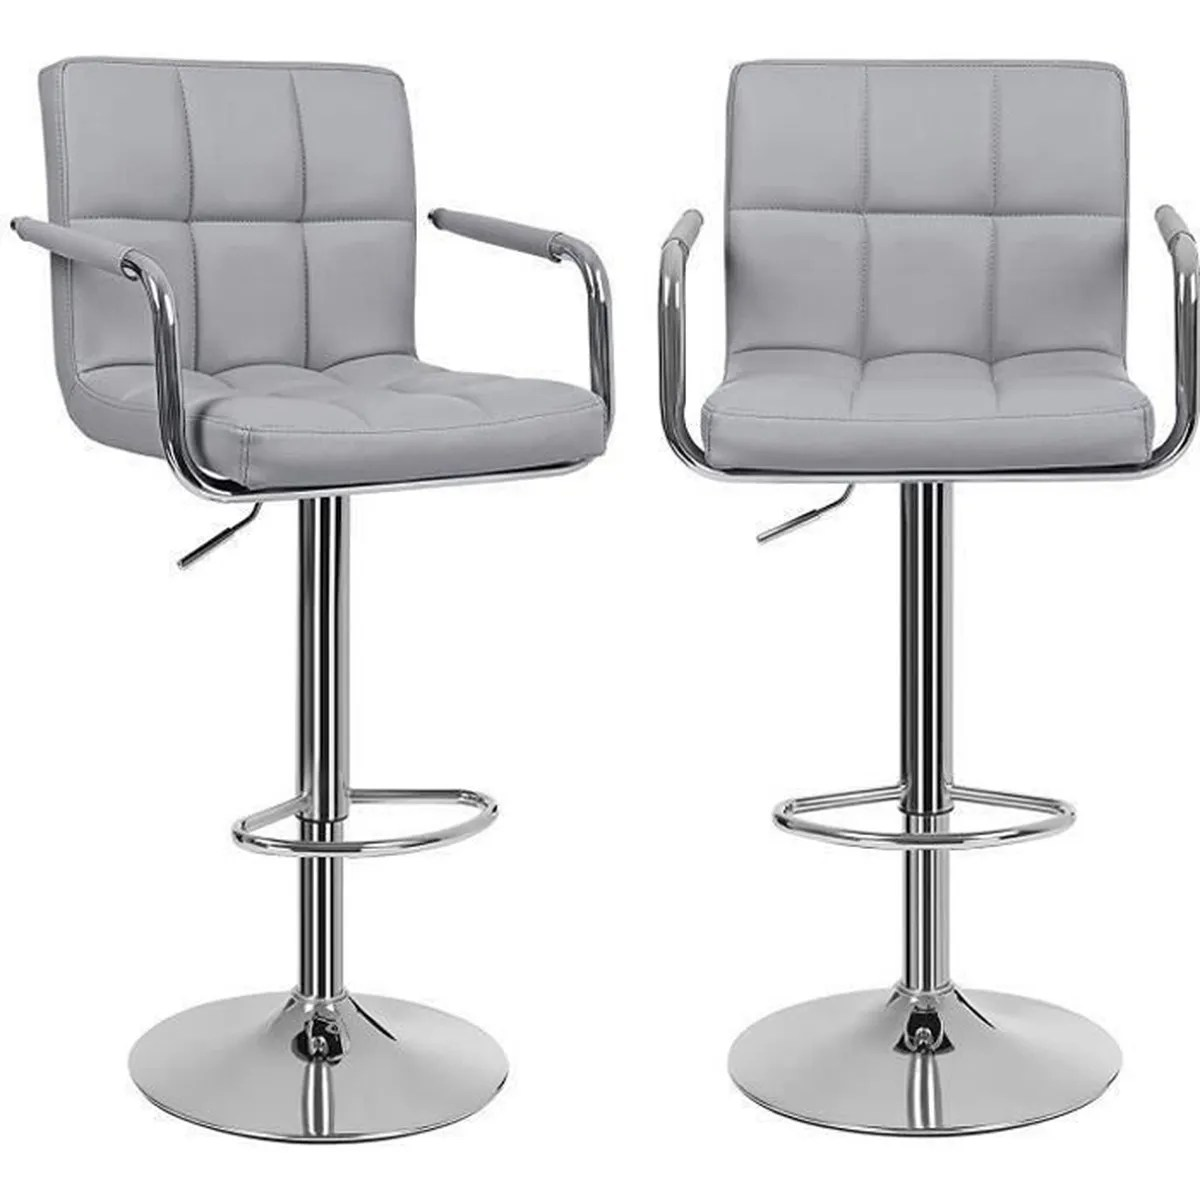 Songmics Lot De 2 Tabourets De Bar Stool Songmics Lot De 2 Tabourets De Bar Gris Haut Chaise De Bar Pu